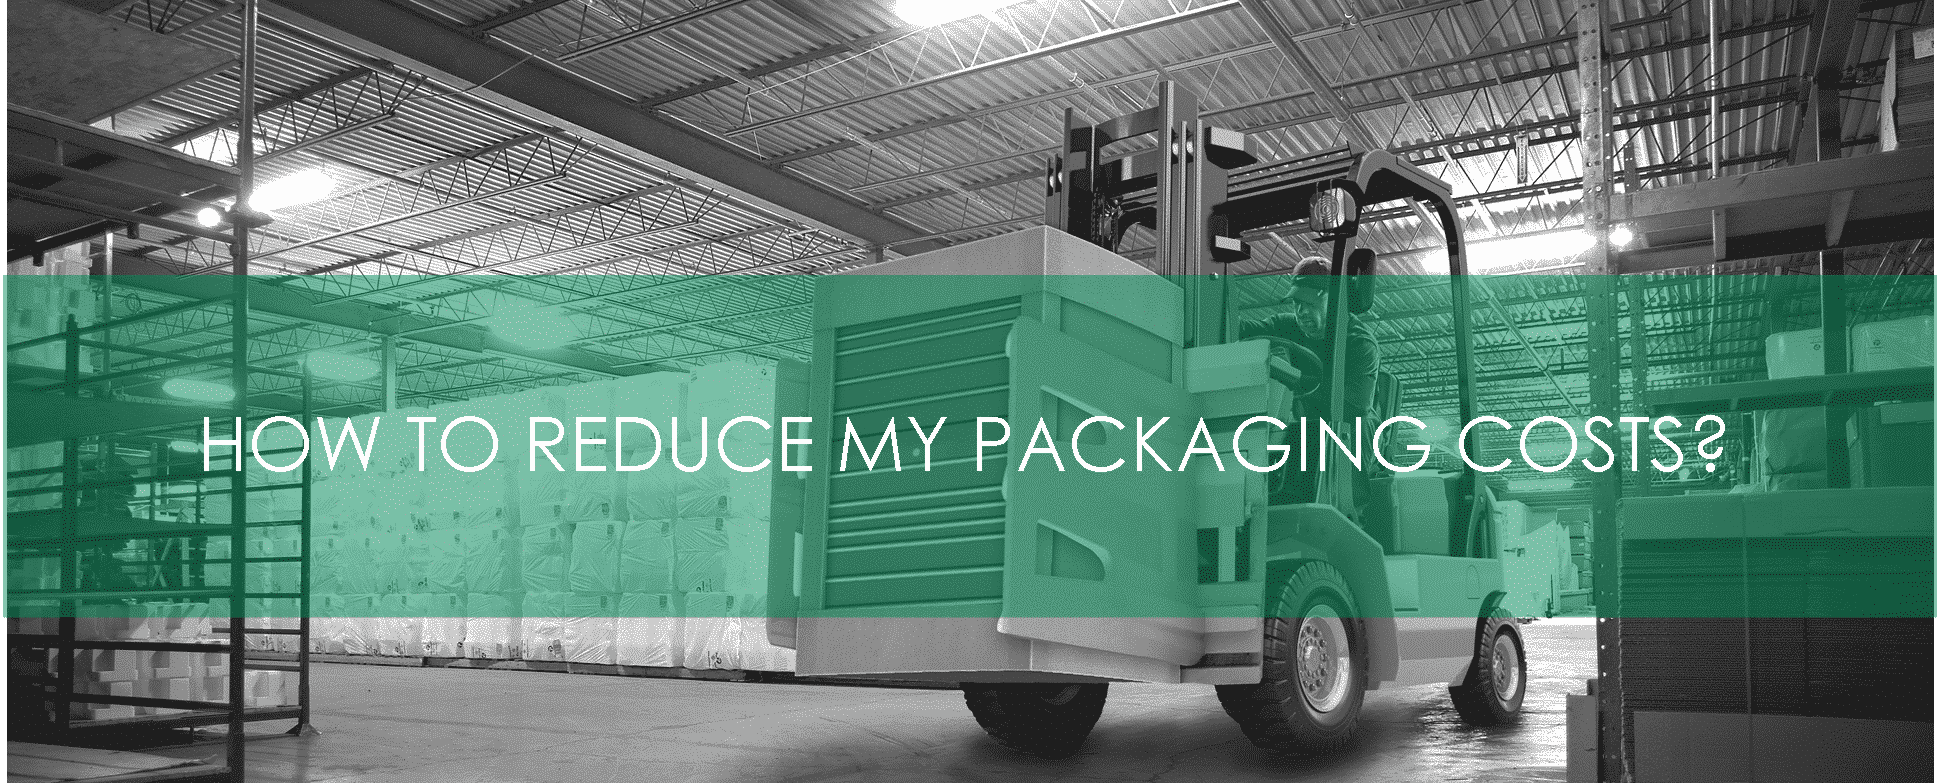 Polyform - Reduce packaging costs